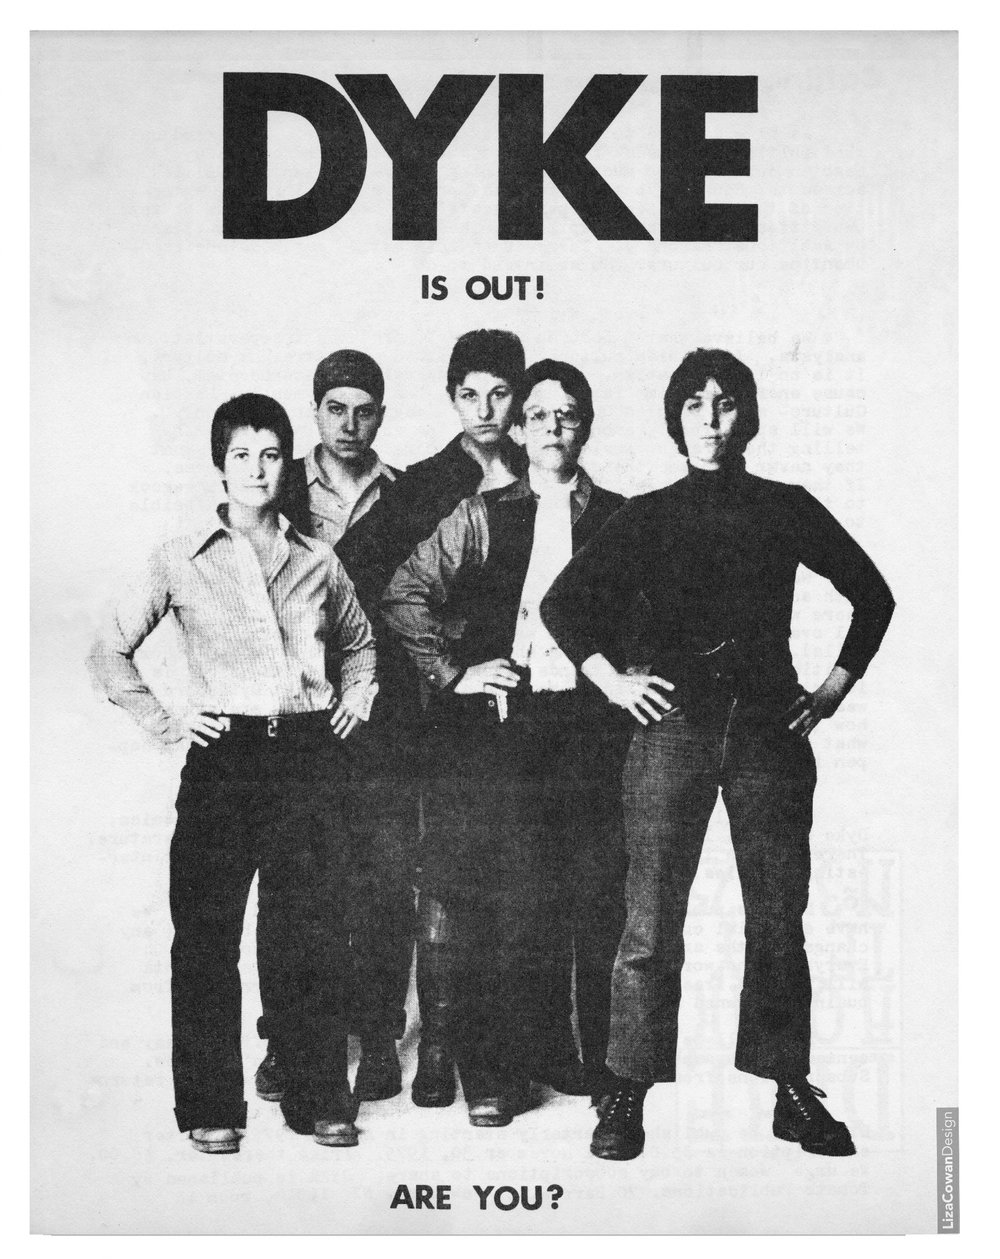 DYKE, A Quarterlyflyer, design by Liza Cowanc. 1974Courtesy Liza Cowan and Penny House